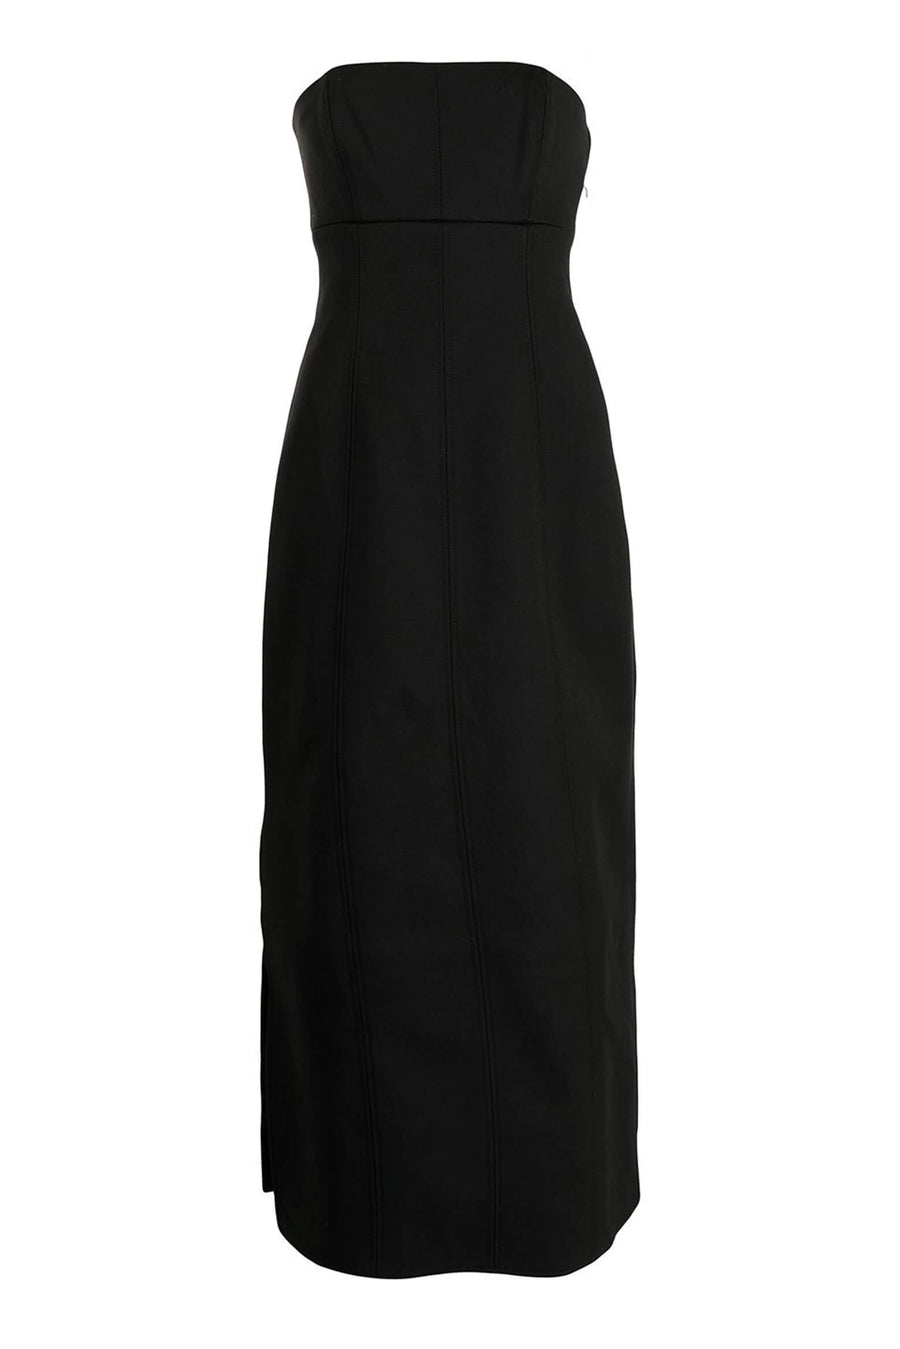 Sir The Label Andre Strapless Midi Dress in Black from The New Trend